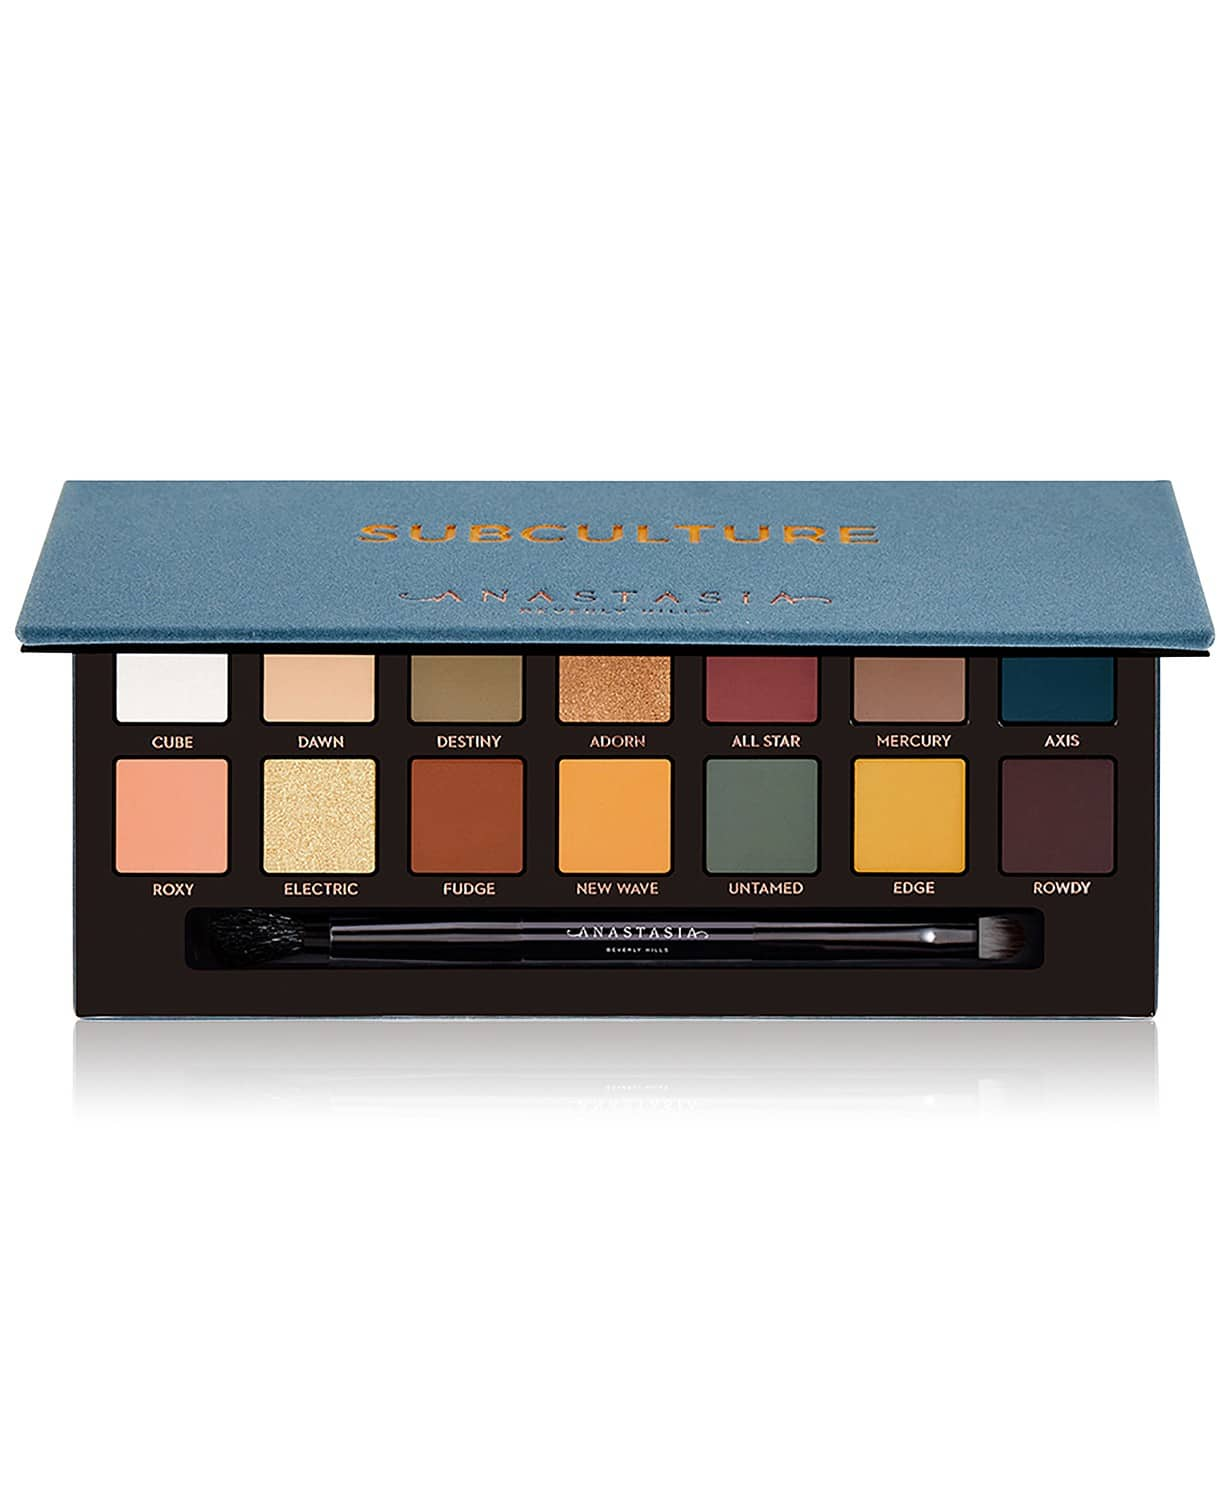 Anastasia Beverly Hills Subculture Eye Shadow Palette $25